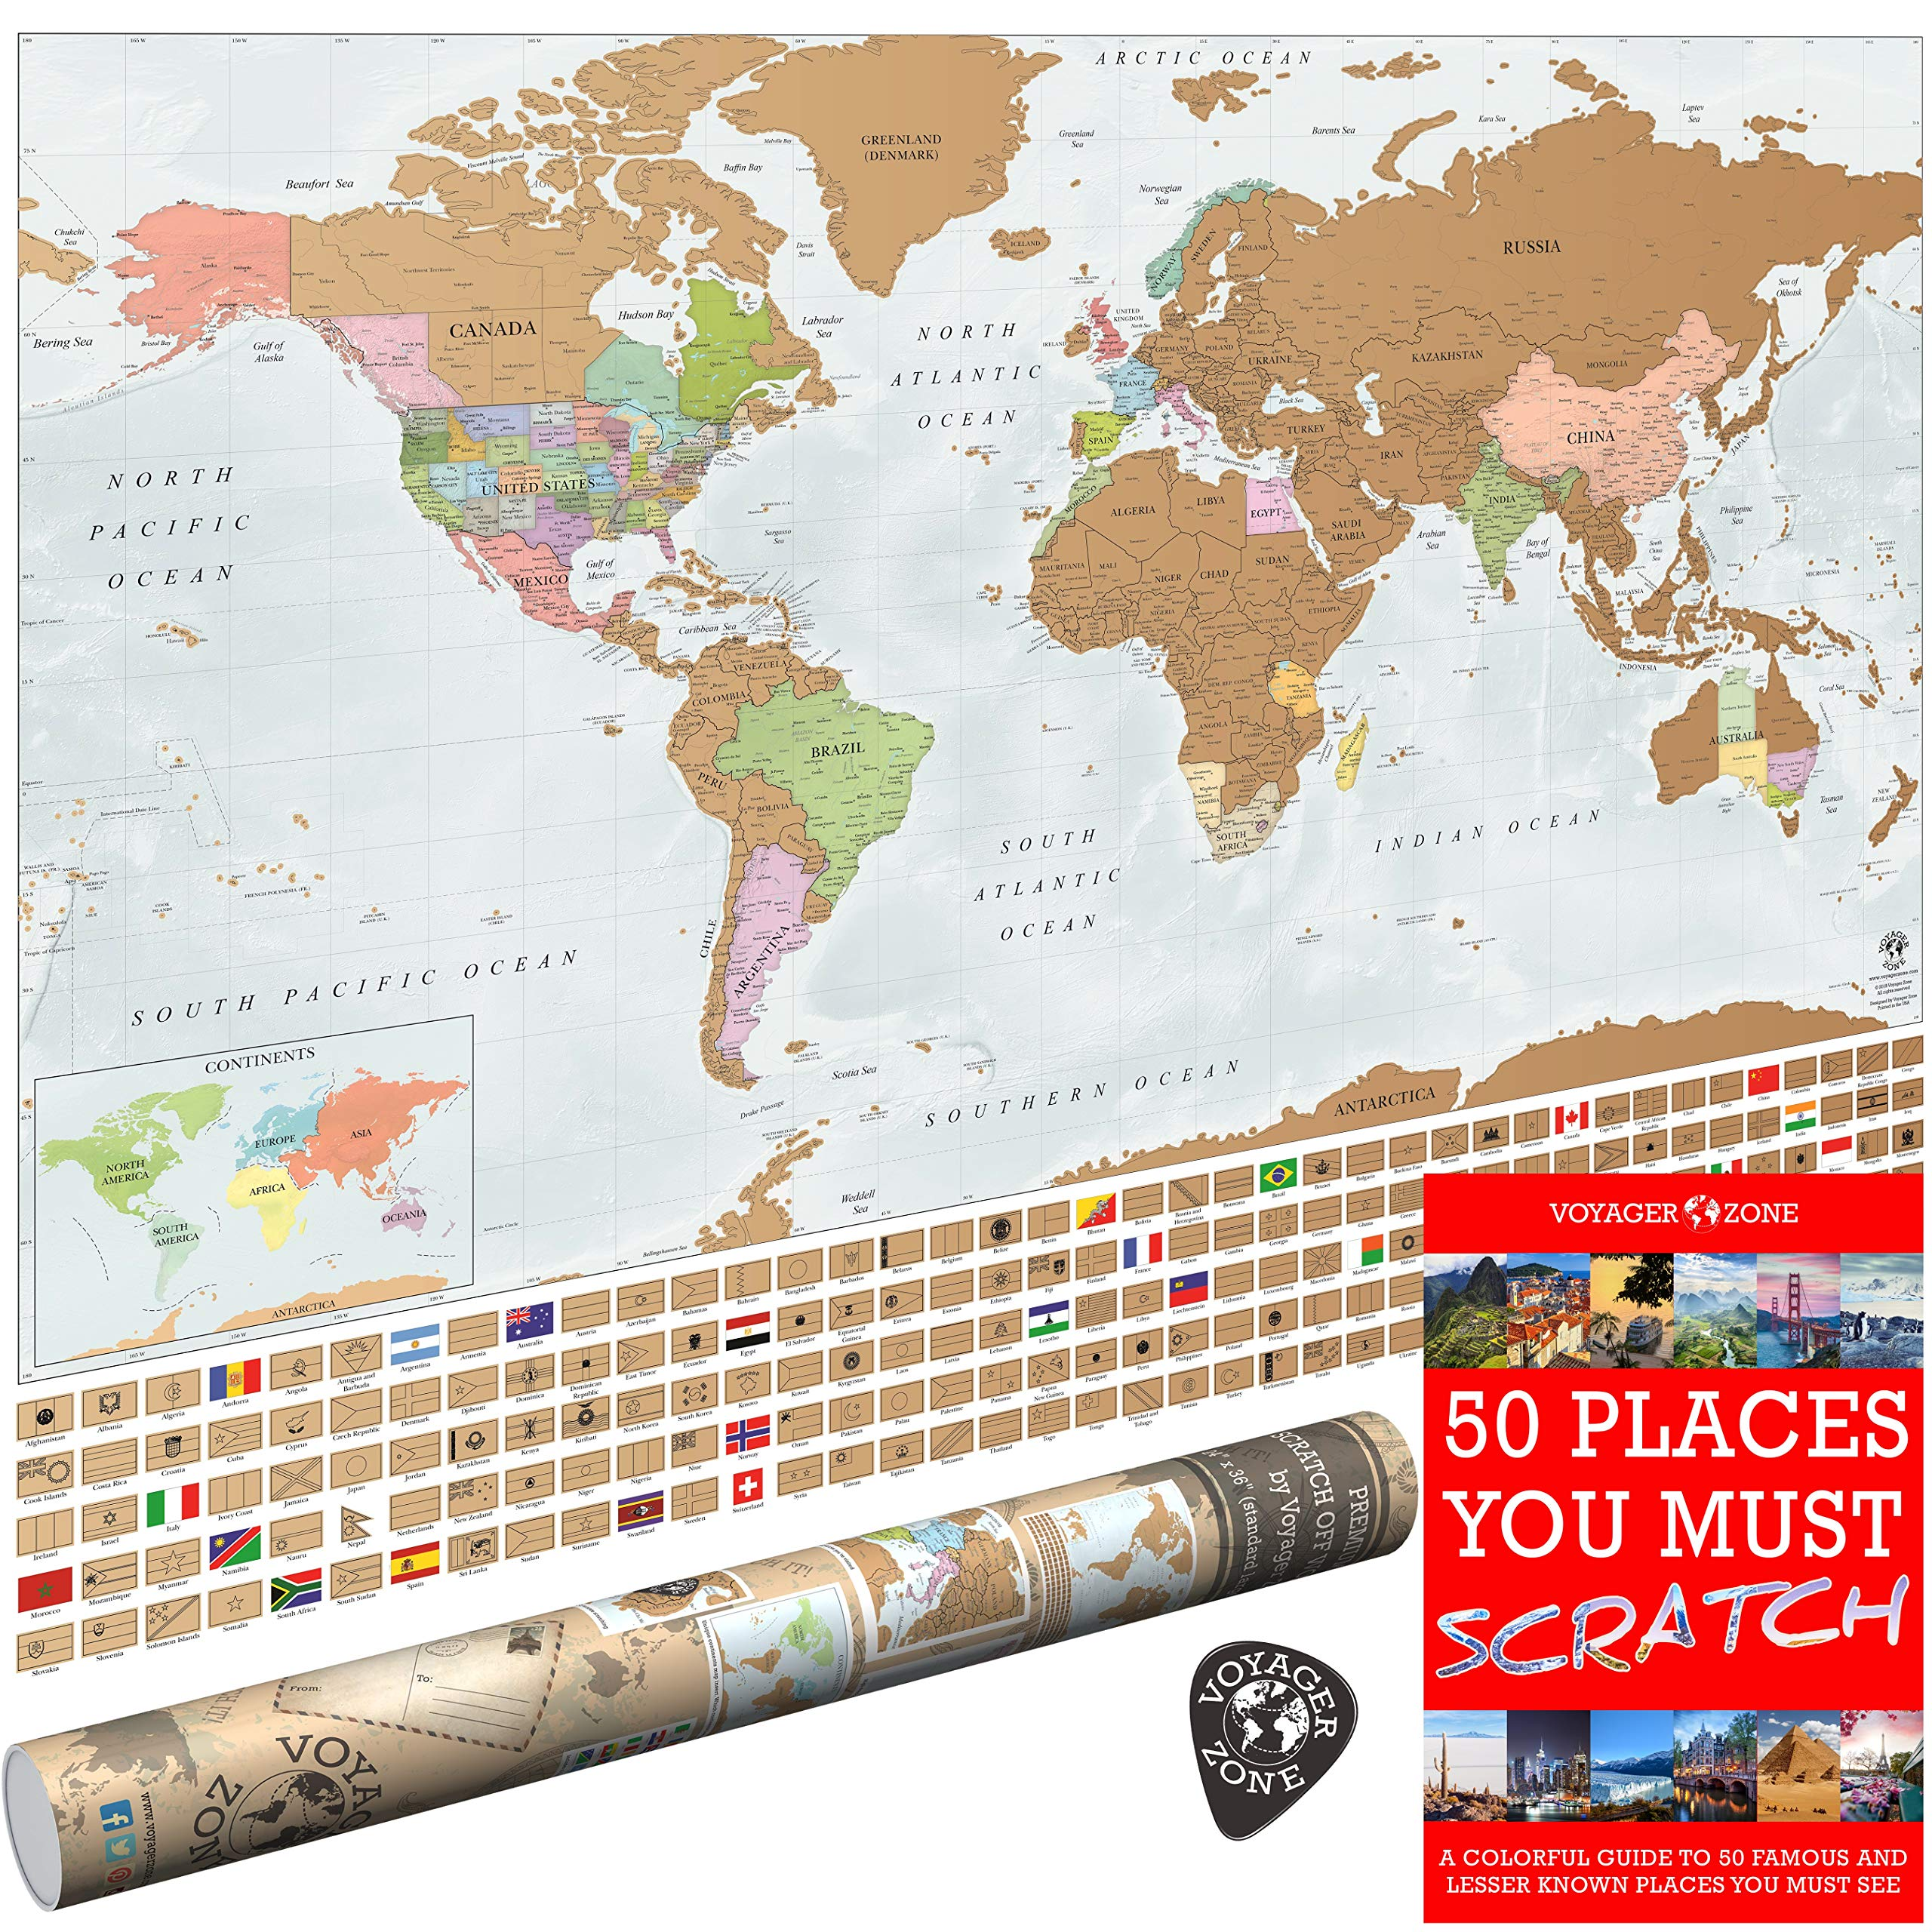 Scratch Off World Map by Voyager Zone - Made in USA - 24x36 Extra Large Size Wall Poster - High Detail Cartography - Premium Spot On Gold Scratch Layer - Scratch-Off Tool and Travel E-Book